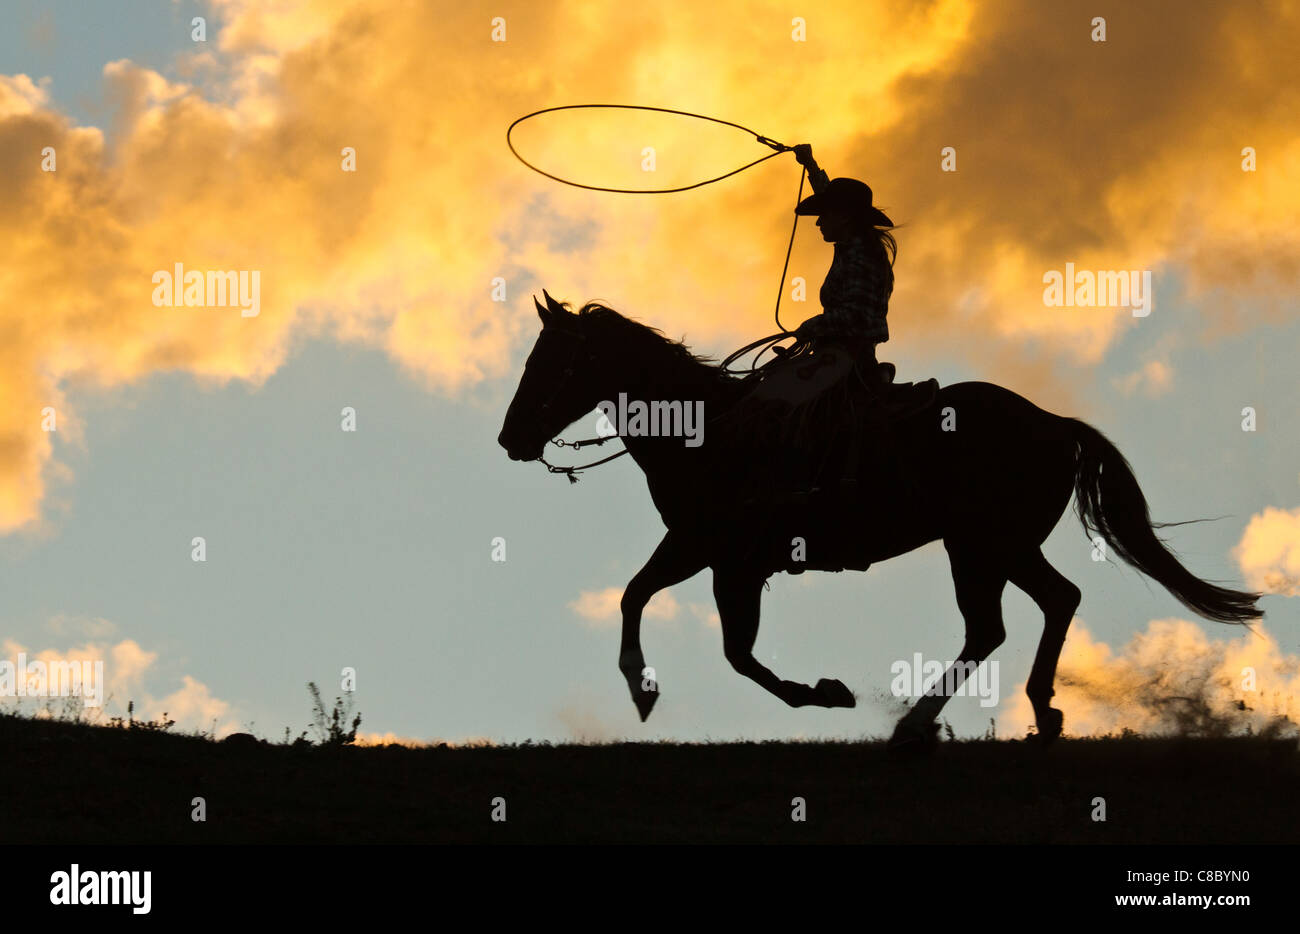 Silhouette of a cowgirl with a lasso against a dramatic clouds setting sun - Stock Image